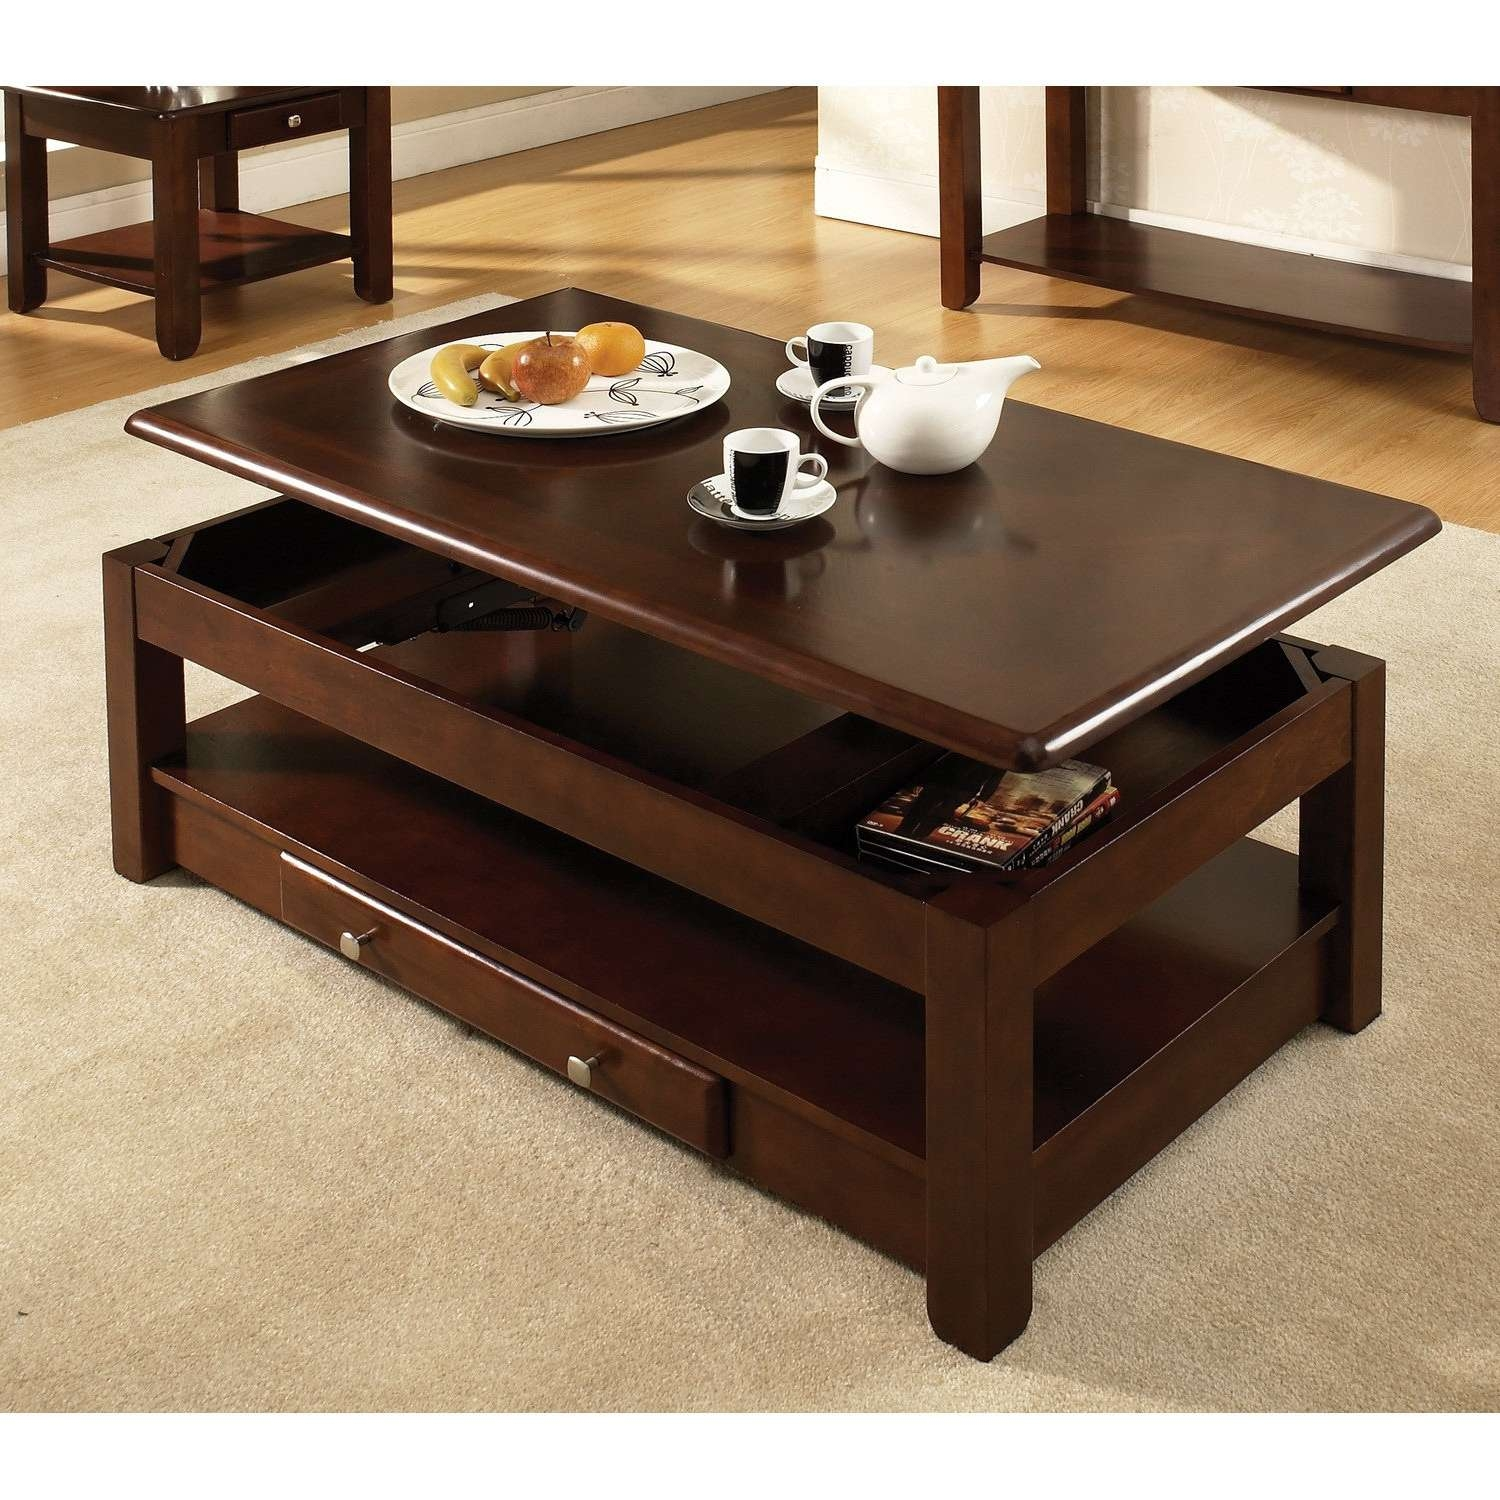 Favorite Square Dark Wood Coffee Table Intended For Square Dark Wood Coffee Table Luxury Coffee Tables Coffee Table (View 12 of 20)